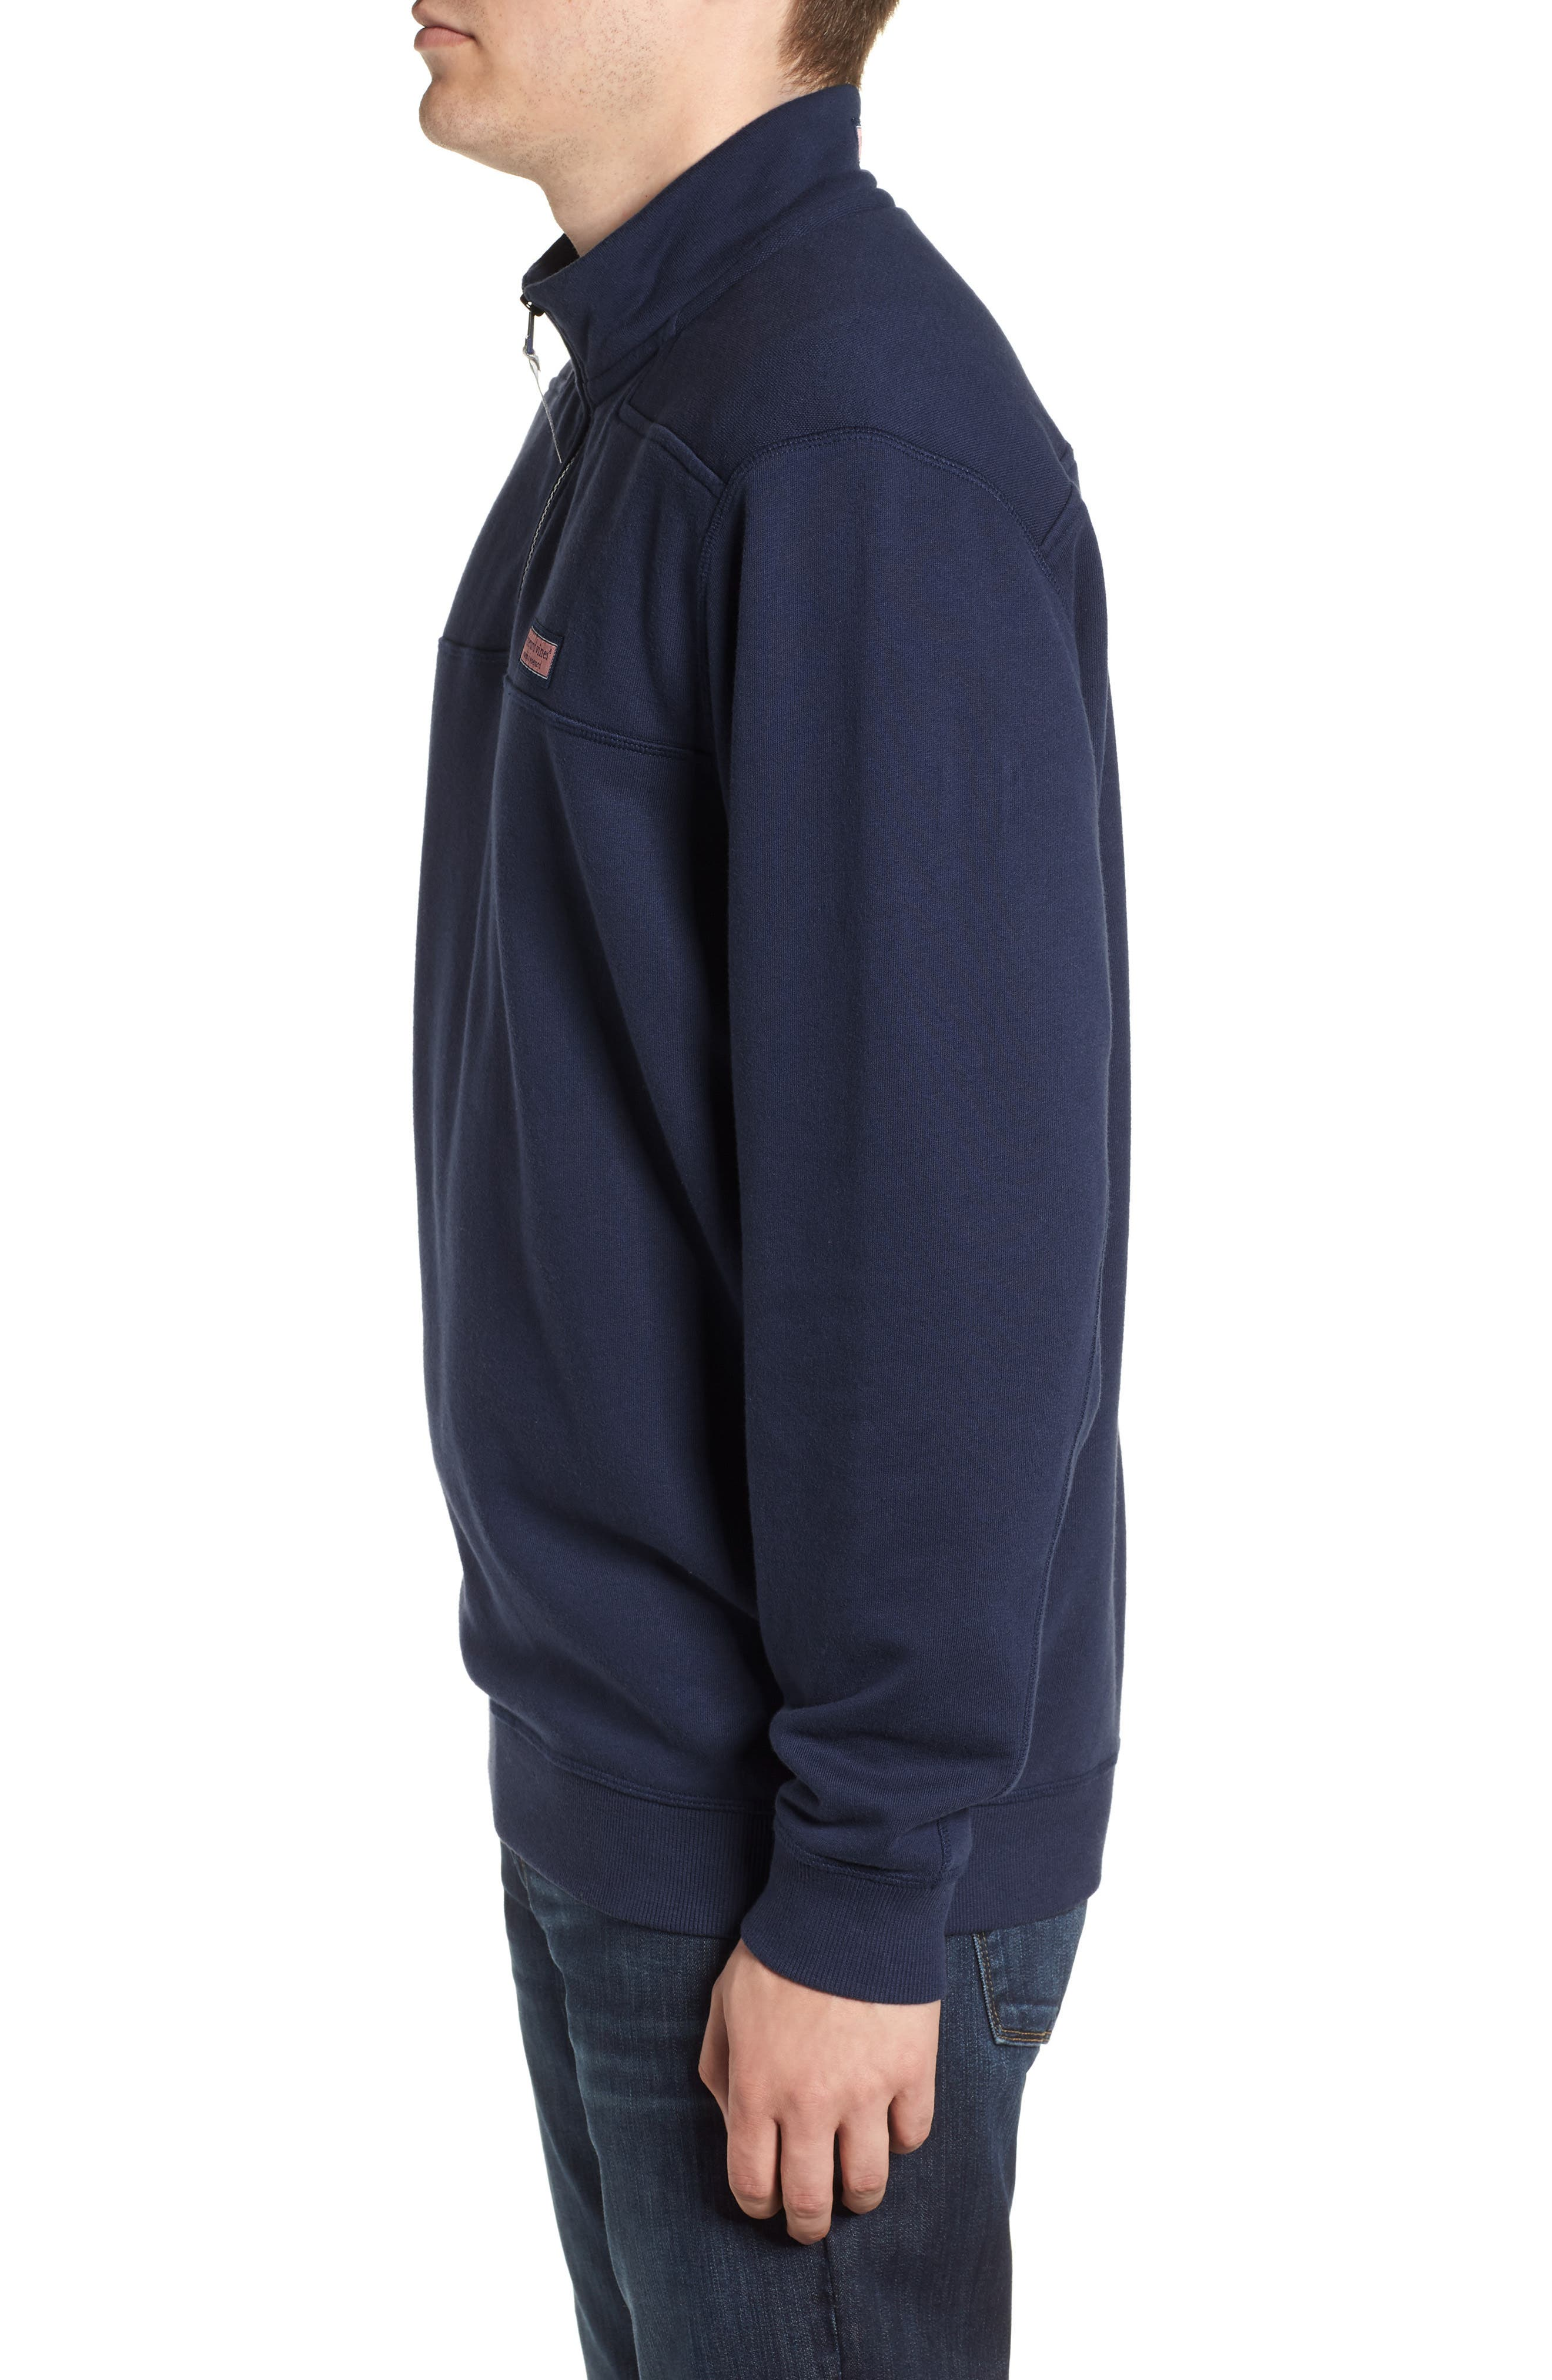 VINEYARD VINES, Collegiate Half Zip Pullover, Alternate thumbnail 3, color, VINEYARD NAVY